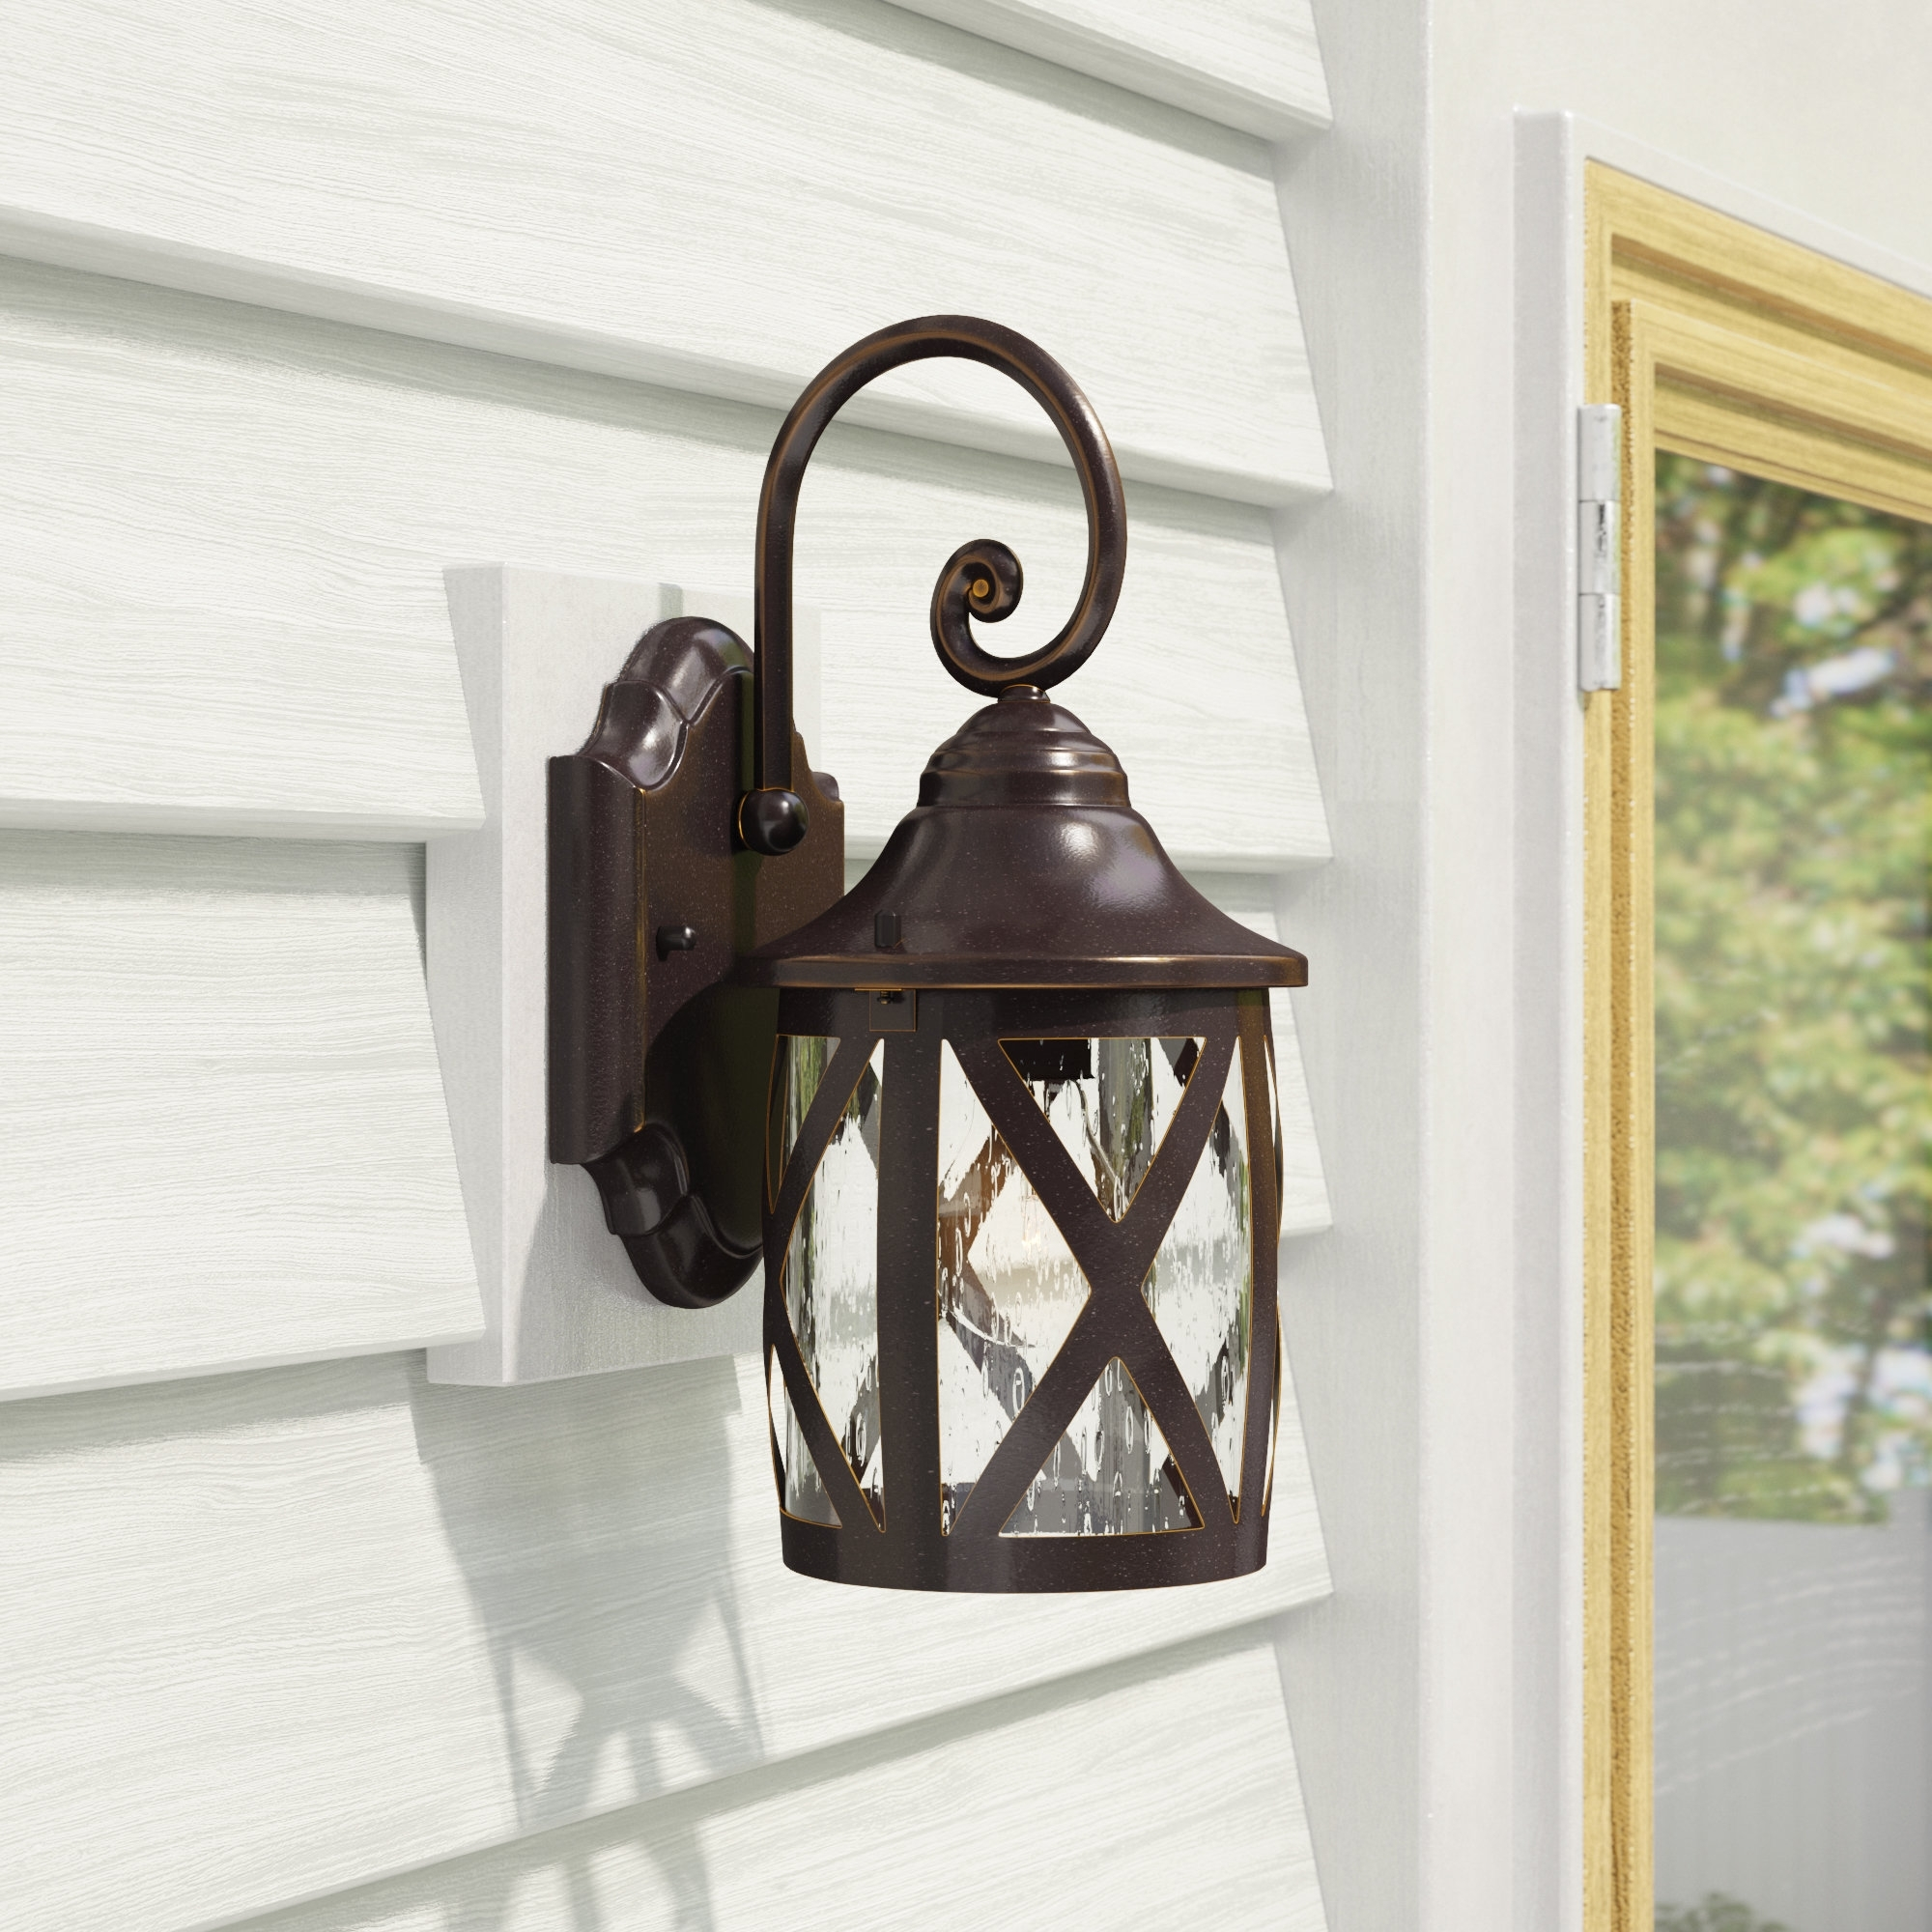 Joanns Outdoor Lanterns Within Preferred Laurel Foundry Modern Farmhouse Landon 1 Light Outdoor Wall Lantern (View 18 of 20)